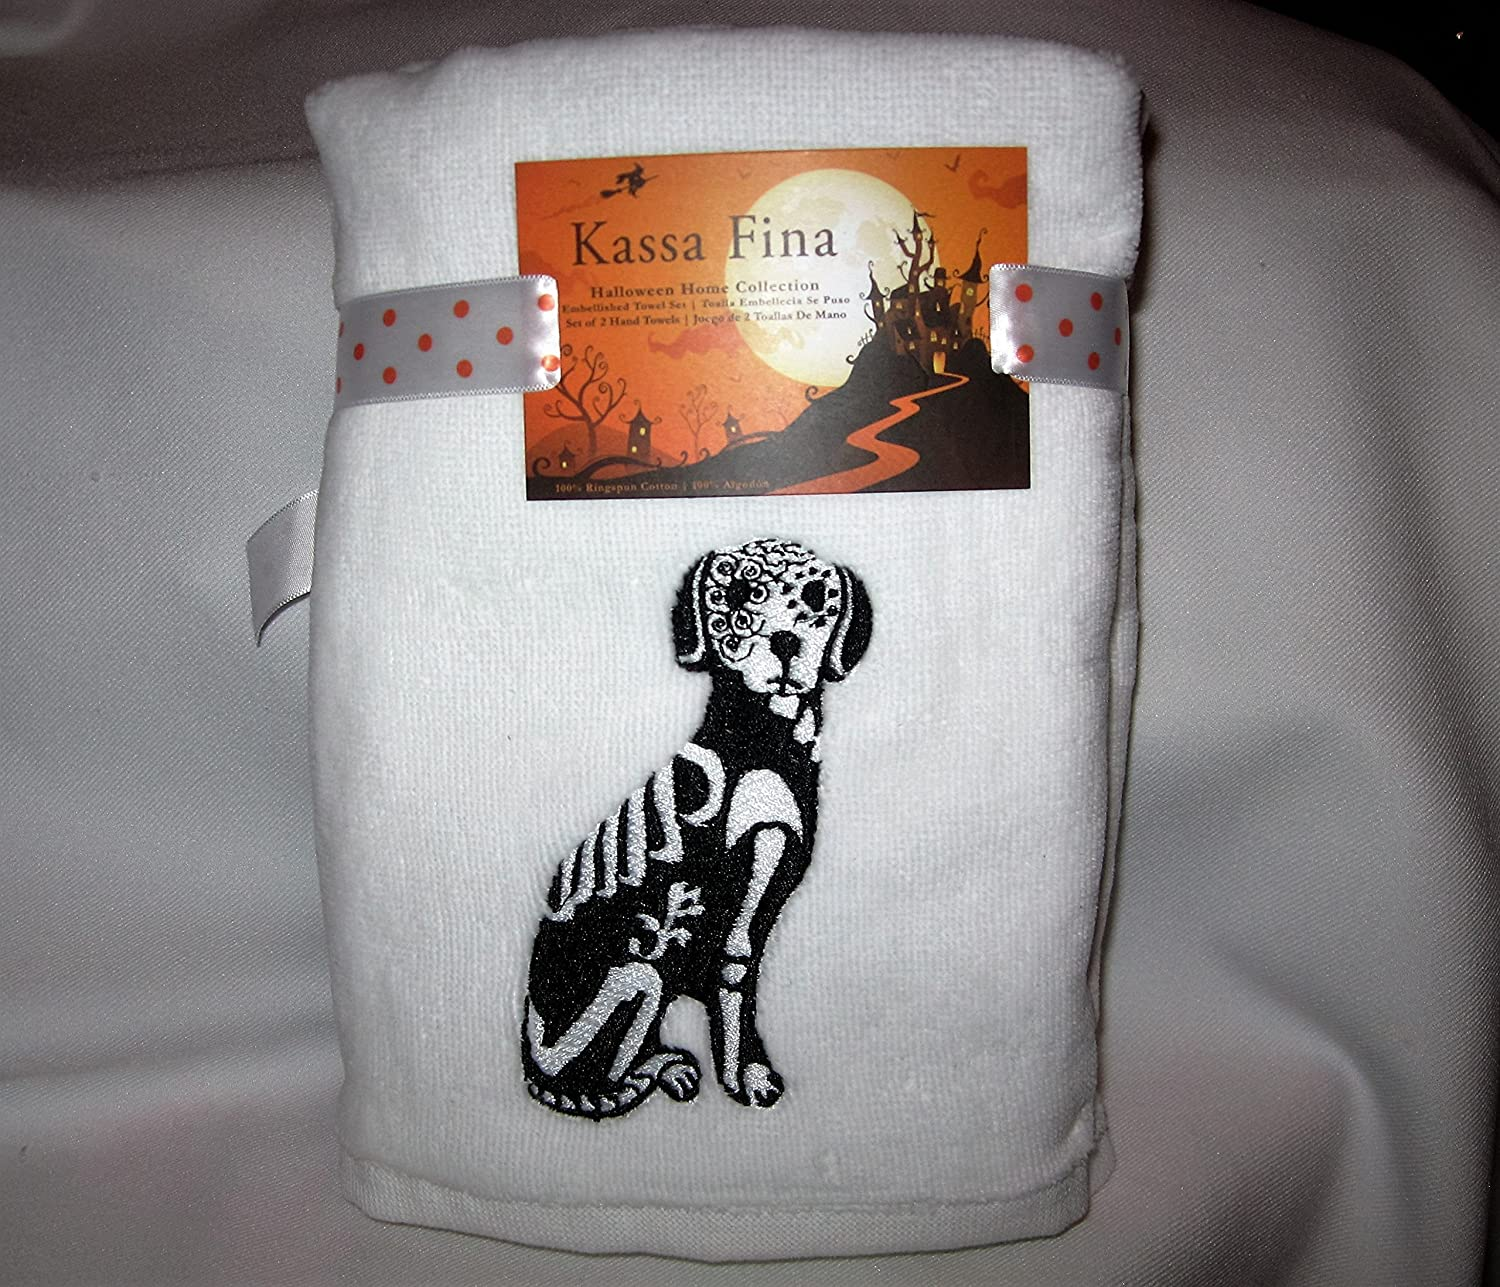 Amazon.com: Kassa Fina Set of 2 Hand Towels - Black Dog in Skleleton Costume: Home & Kitchen